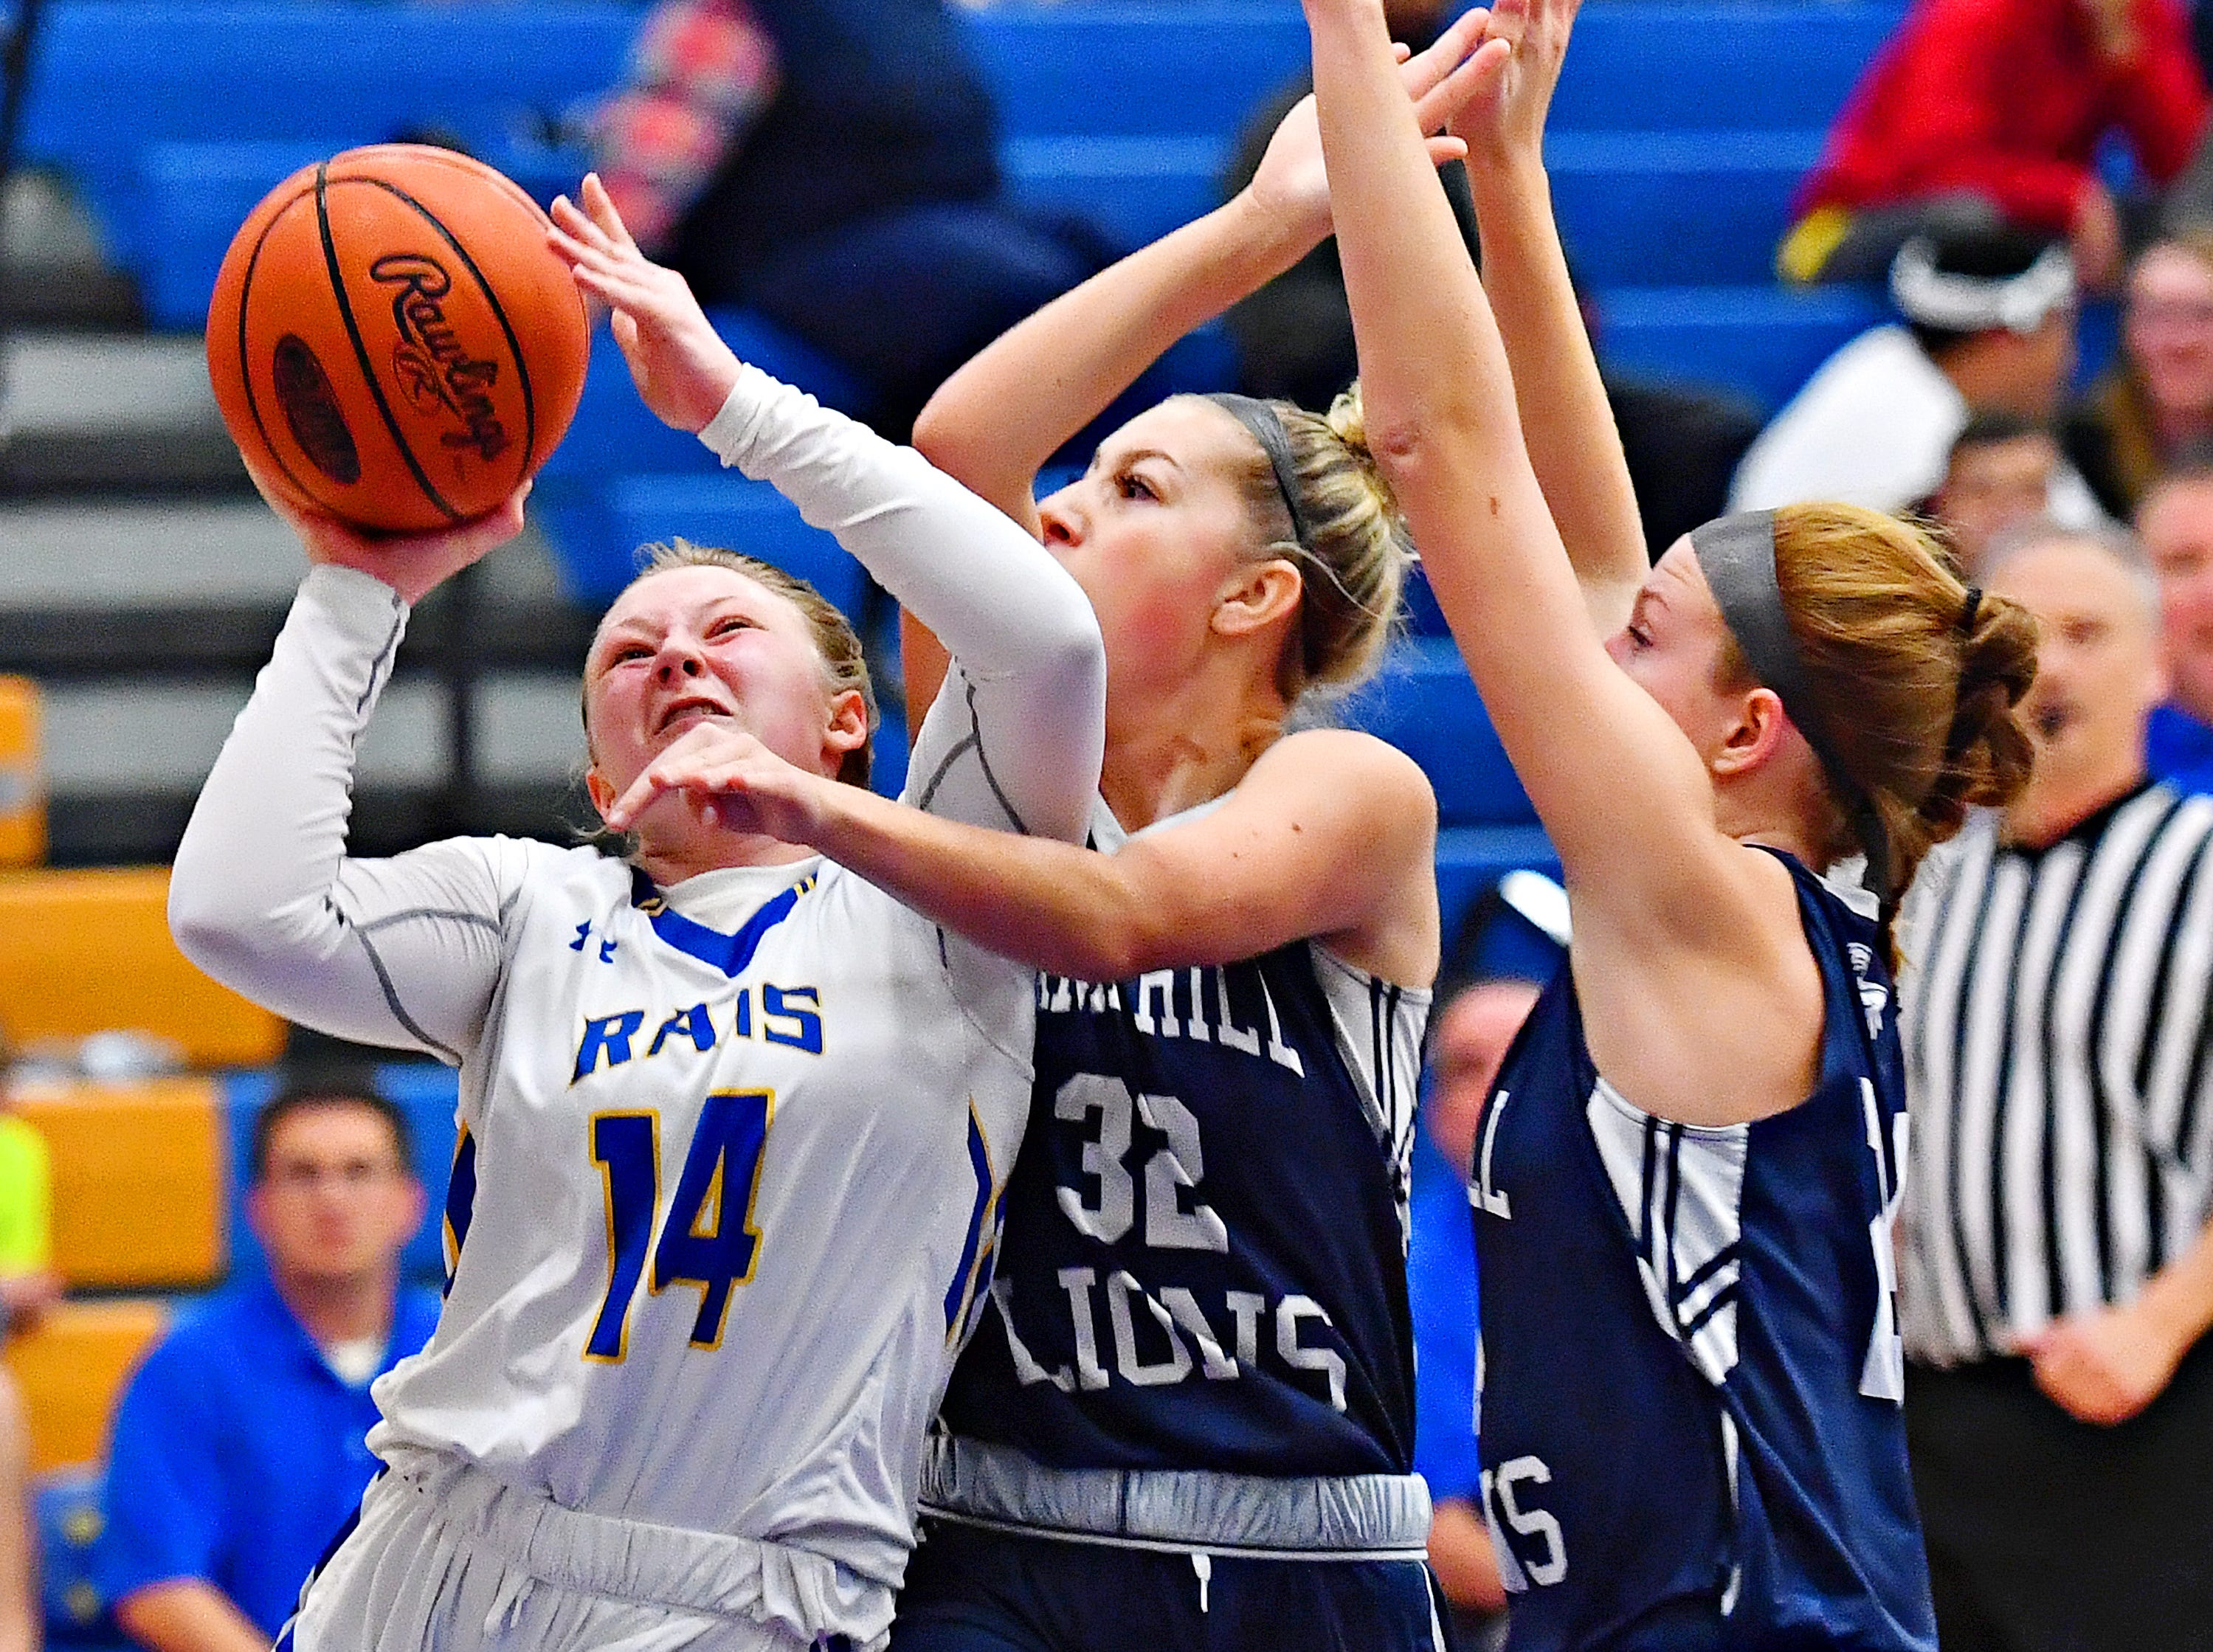 Kennard-Dale's Chandler Swanson, left, takes the ball to the hoop while Camp Hill's Sheridan Reid, center, and Ellie Goodwin defend during girls' basketball action at Kennard-Dale High School in Fawn Grove, Wednesday, Dec. 12, 2018. Kennard-Dale would win the game 47-28. Dawn J. Sagert photo